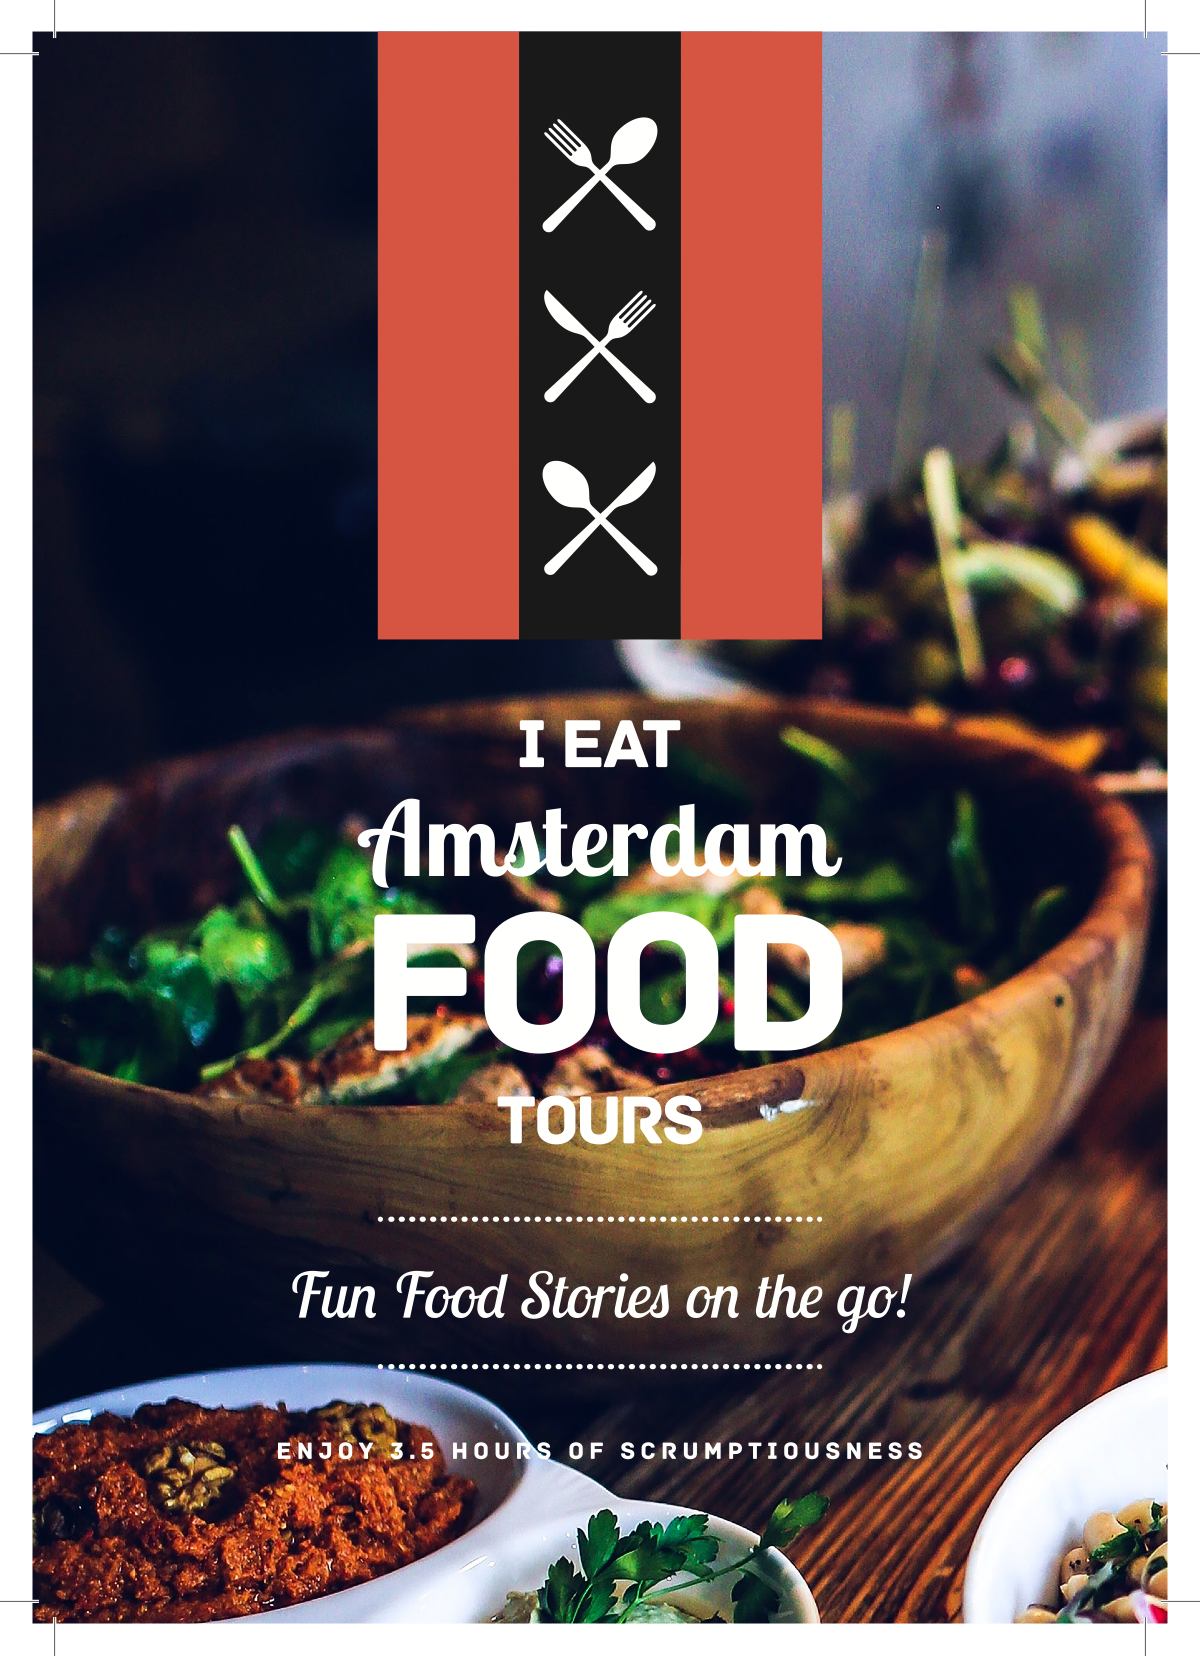 An attention grabbing flyer to encourage Gastro-Tourists to join an I Eat Amsterdam Food Tour